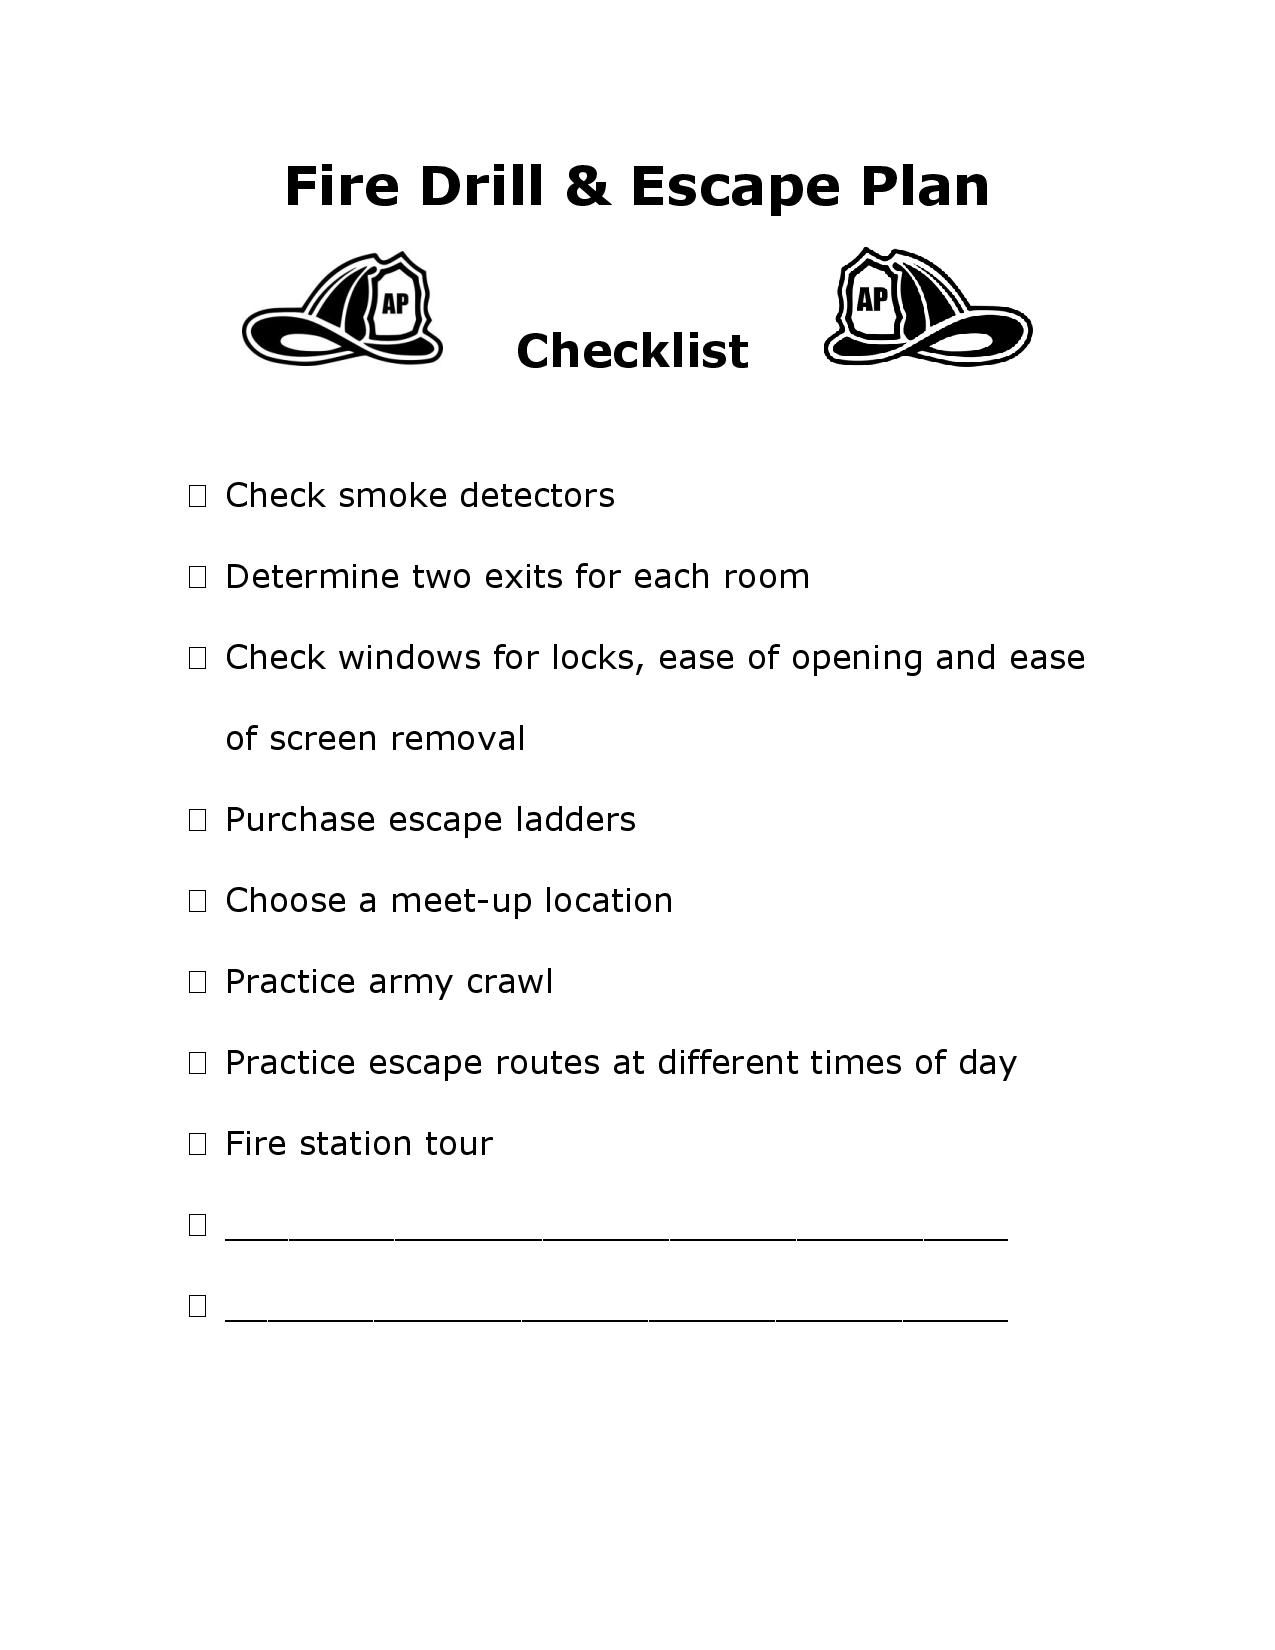 Family escape plans | Emergency Prepardness | Pinterest ...